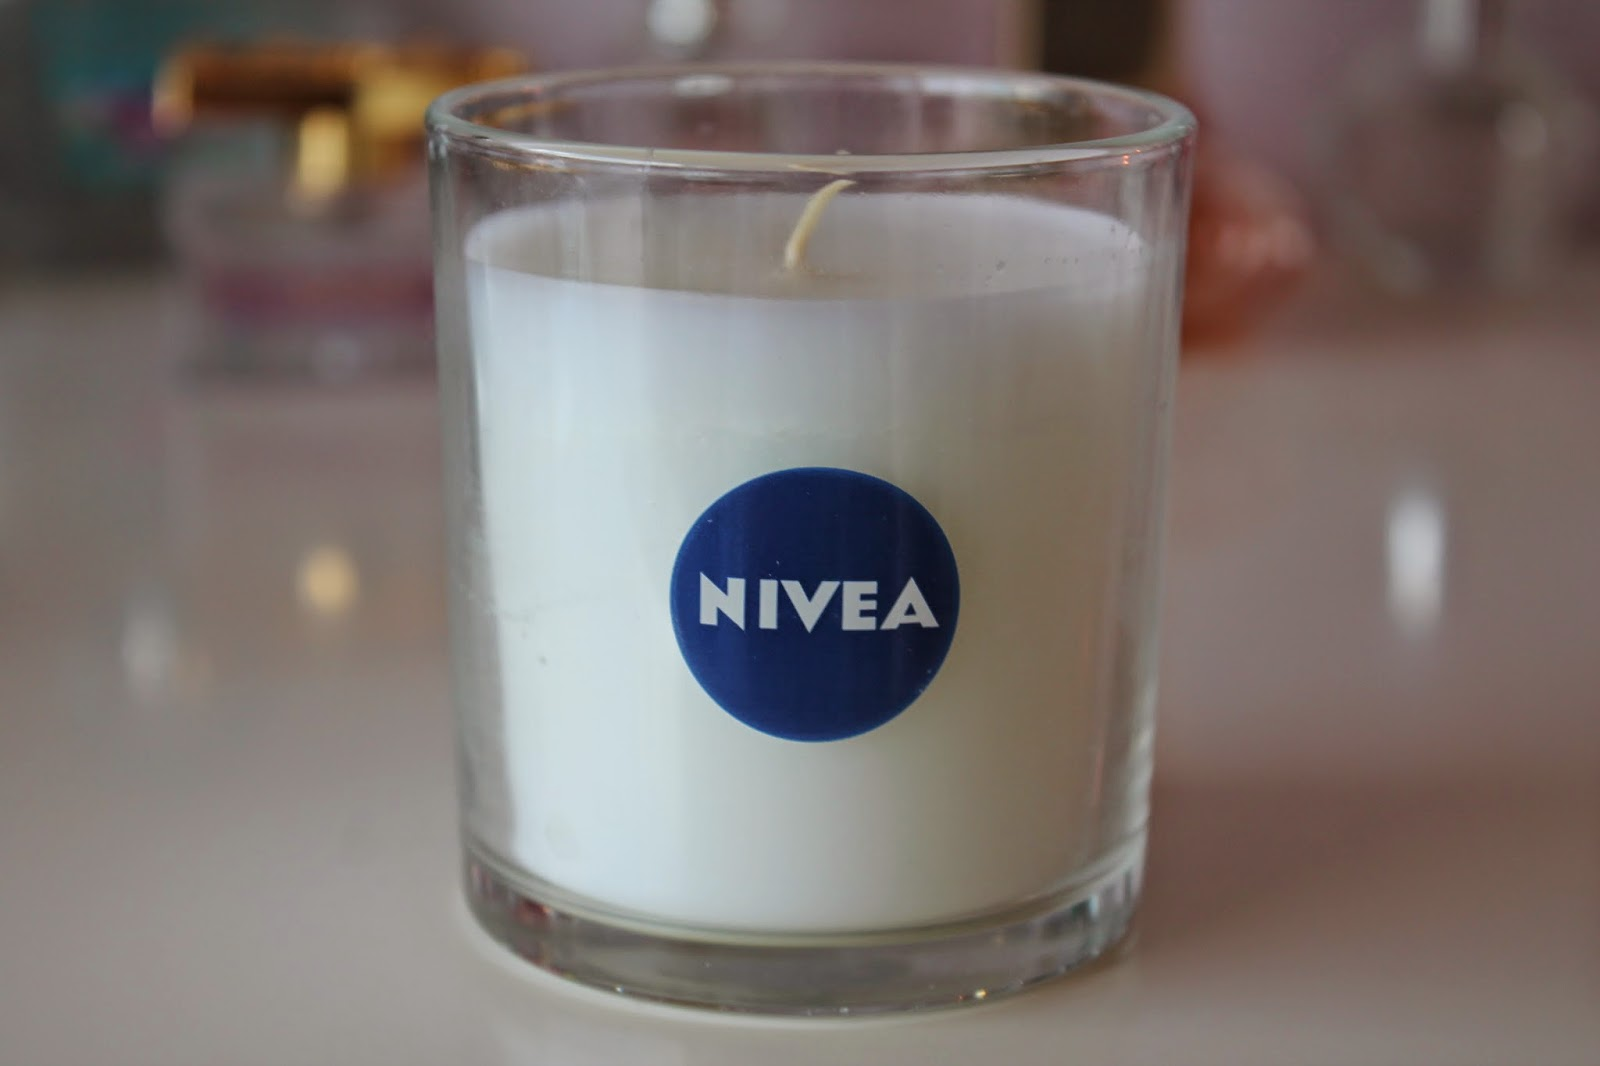 Nivea Duftkerze Beauty Lifestyle Fashion More